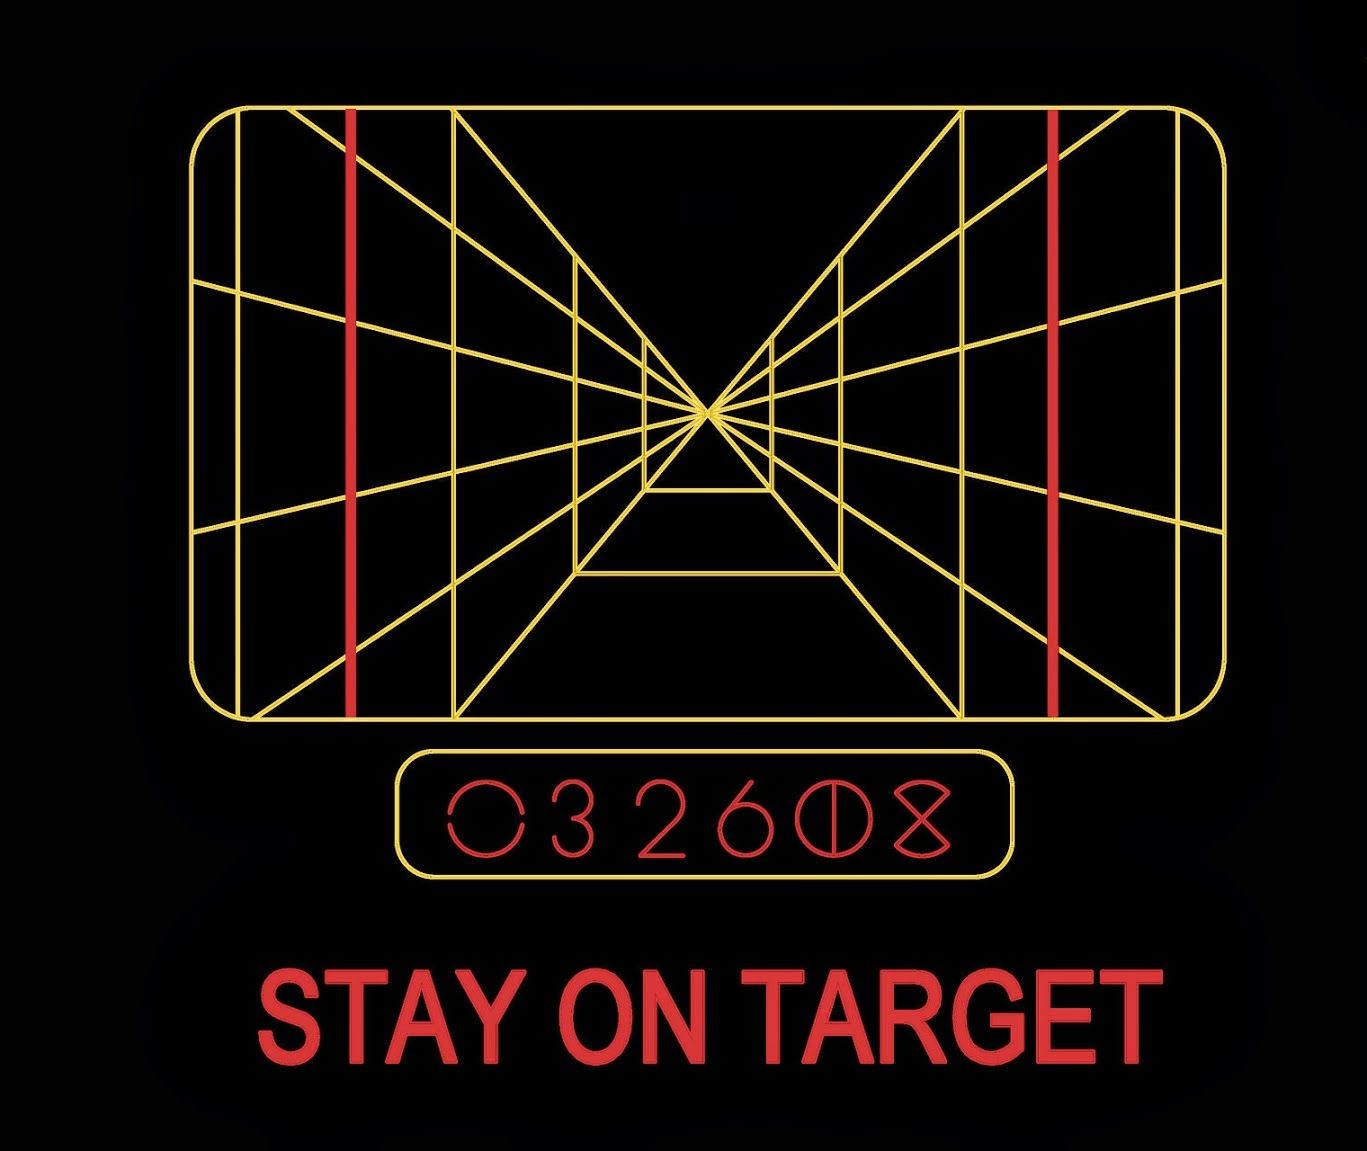 Star Wars Quotes 5 Star Wars Quotes That Make Good New Year's Resolutions  Brian On